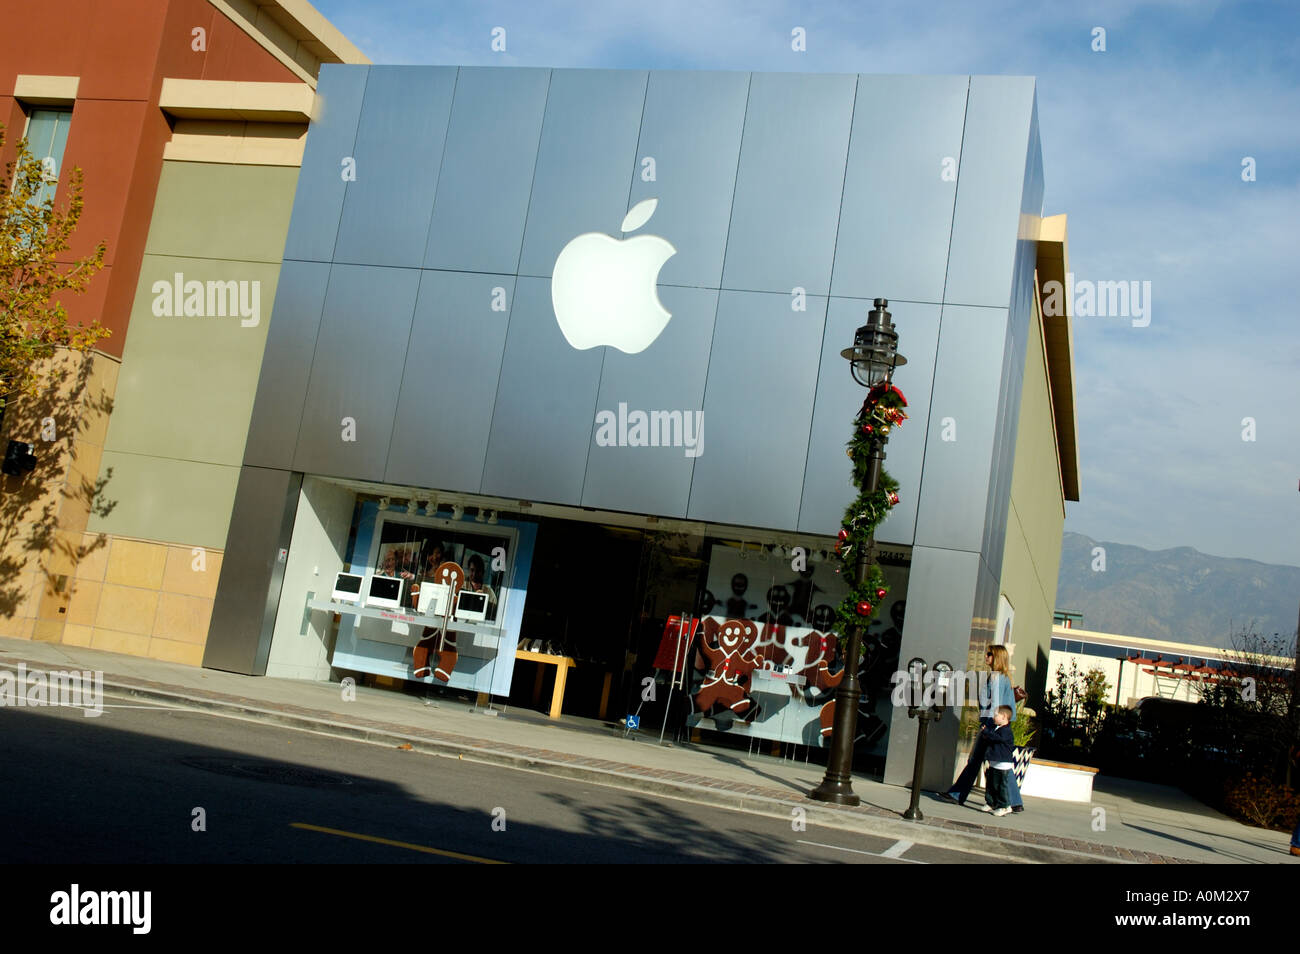 Apple Store Facade With Christmas Decorations Lamppost Next To It In Stock Photo Royalty Free